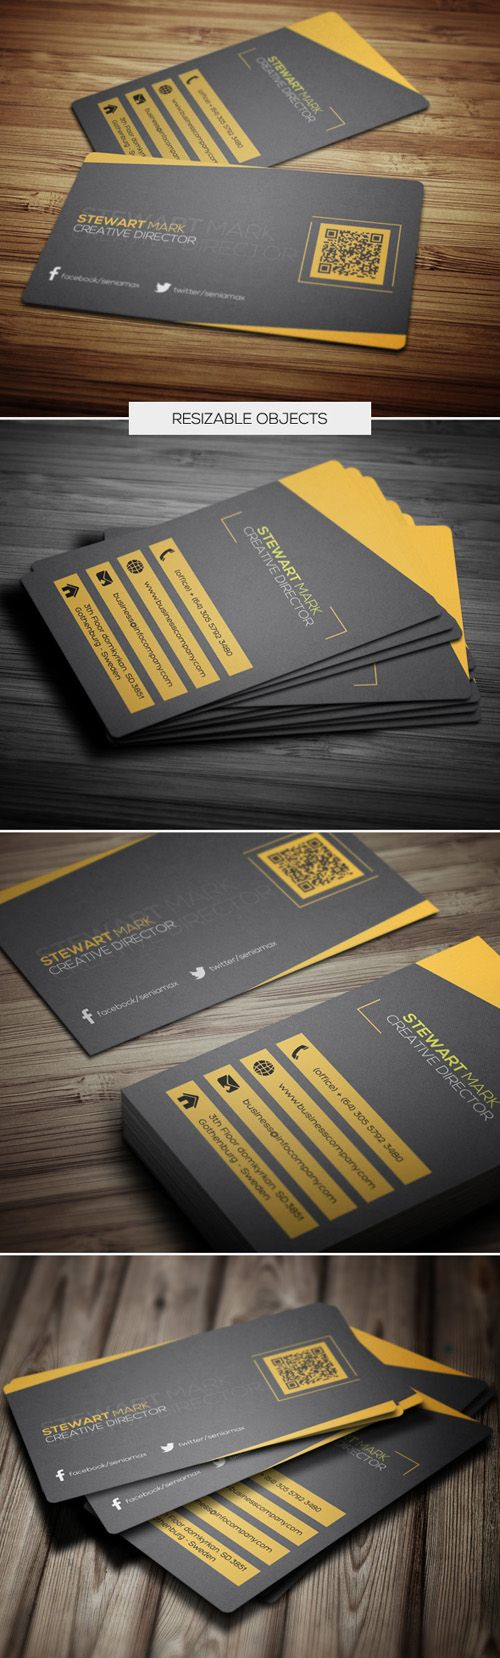 1439 best cool business cards on pinterest images on pinterest want to learn how to create amazing business cards download for free the complete magicingreecefo Choice Image